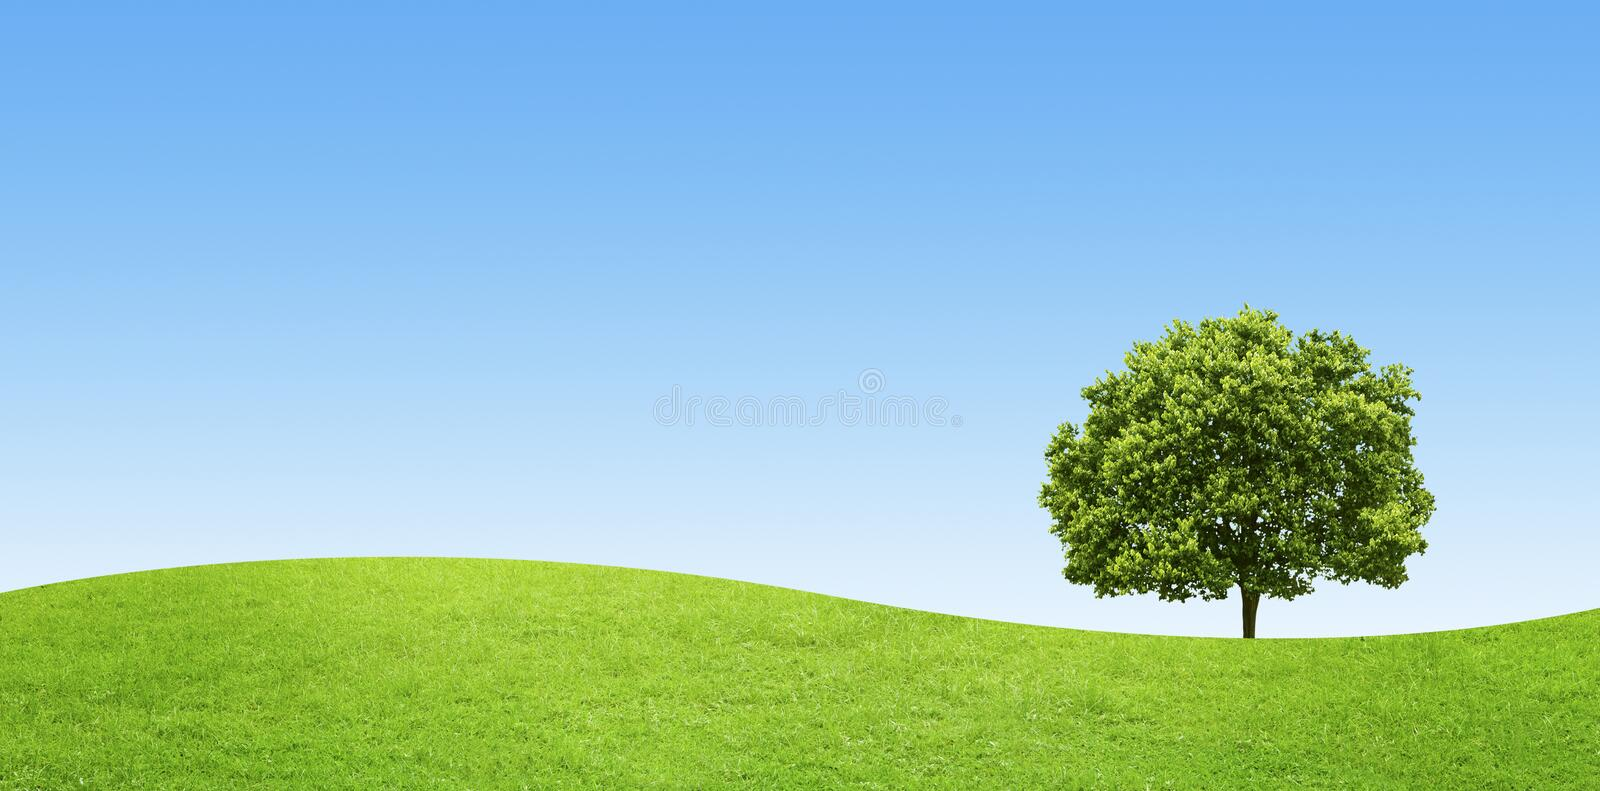 Download Green Field With A Big Tree On Blue Sky Background Stock Photo - Image of horizon, landscape: 19525480